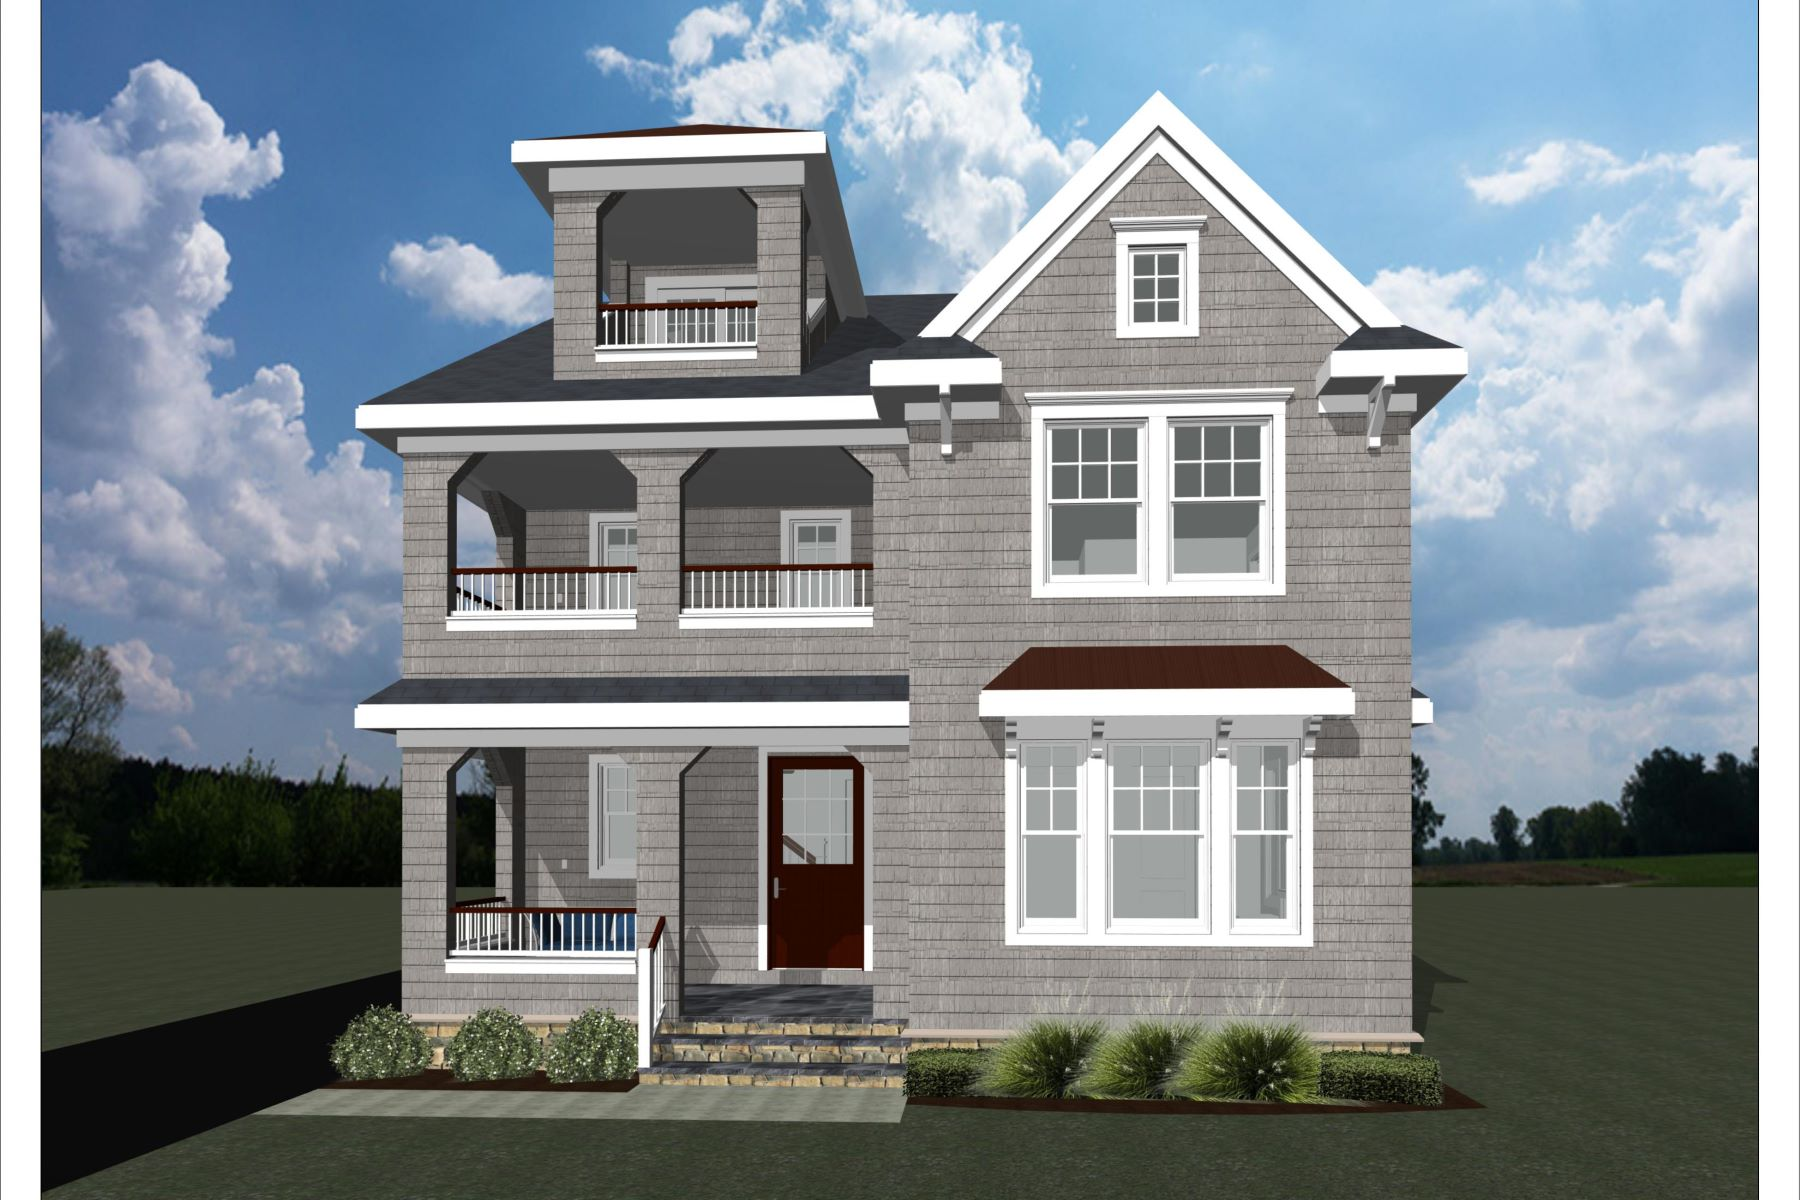 Single Family Homes pour l Vente à New Construction in Spring Lake 107 Mercer Avenue, Spring Lake, New Jersey 07762 États-Unis